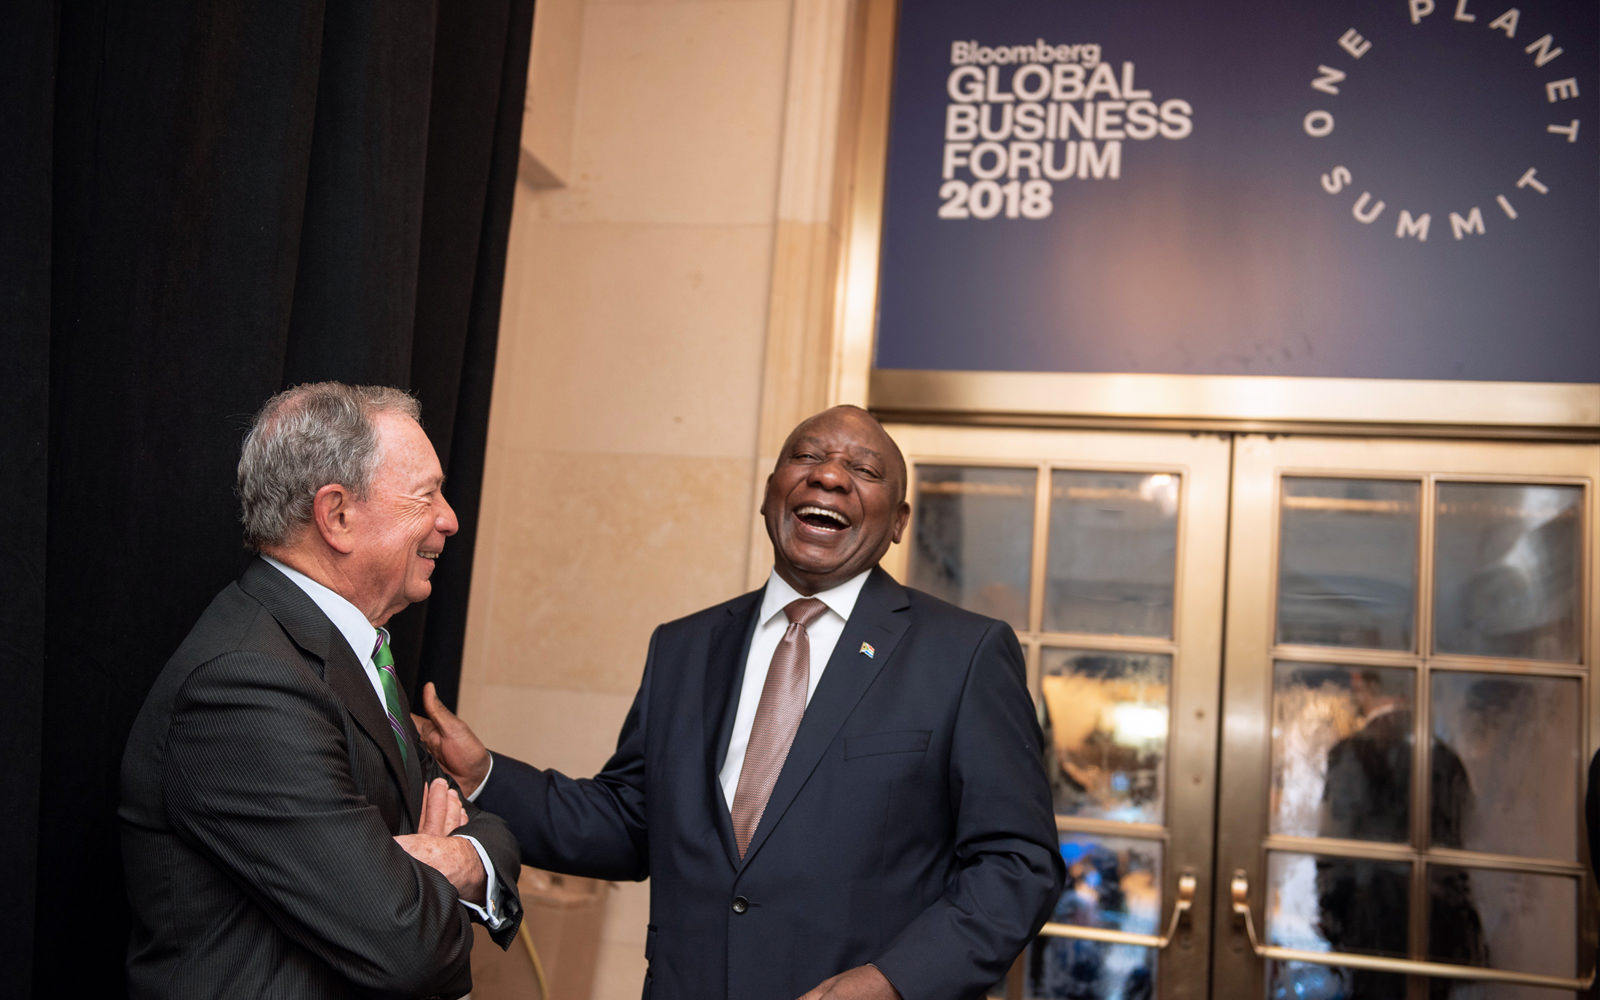 Mike Bloomberg and President Cyril Ramaphosa of South Africa share a laugh at the Bloomberg Global Business Forum in New York City.